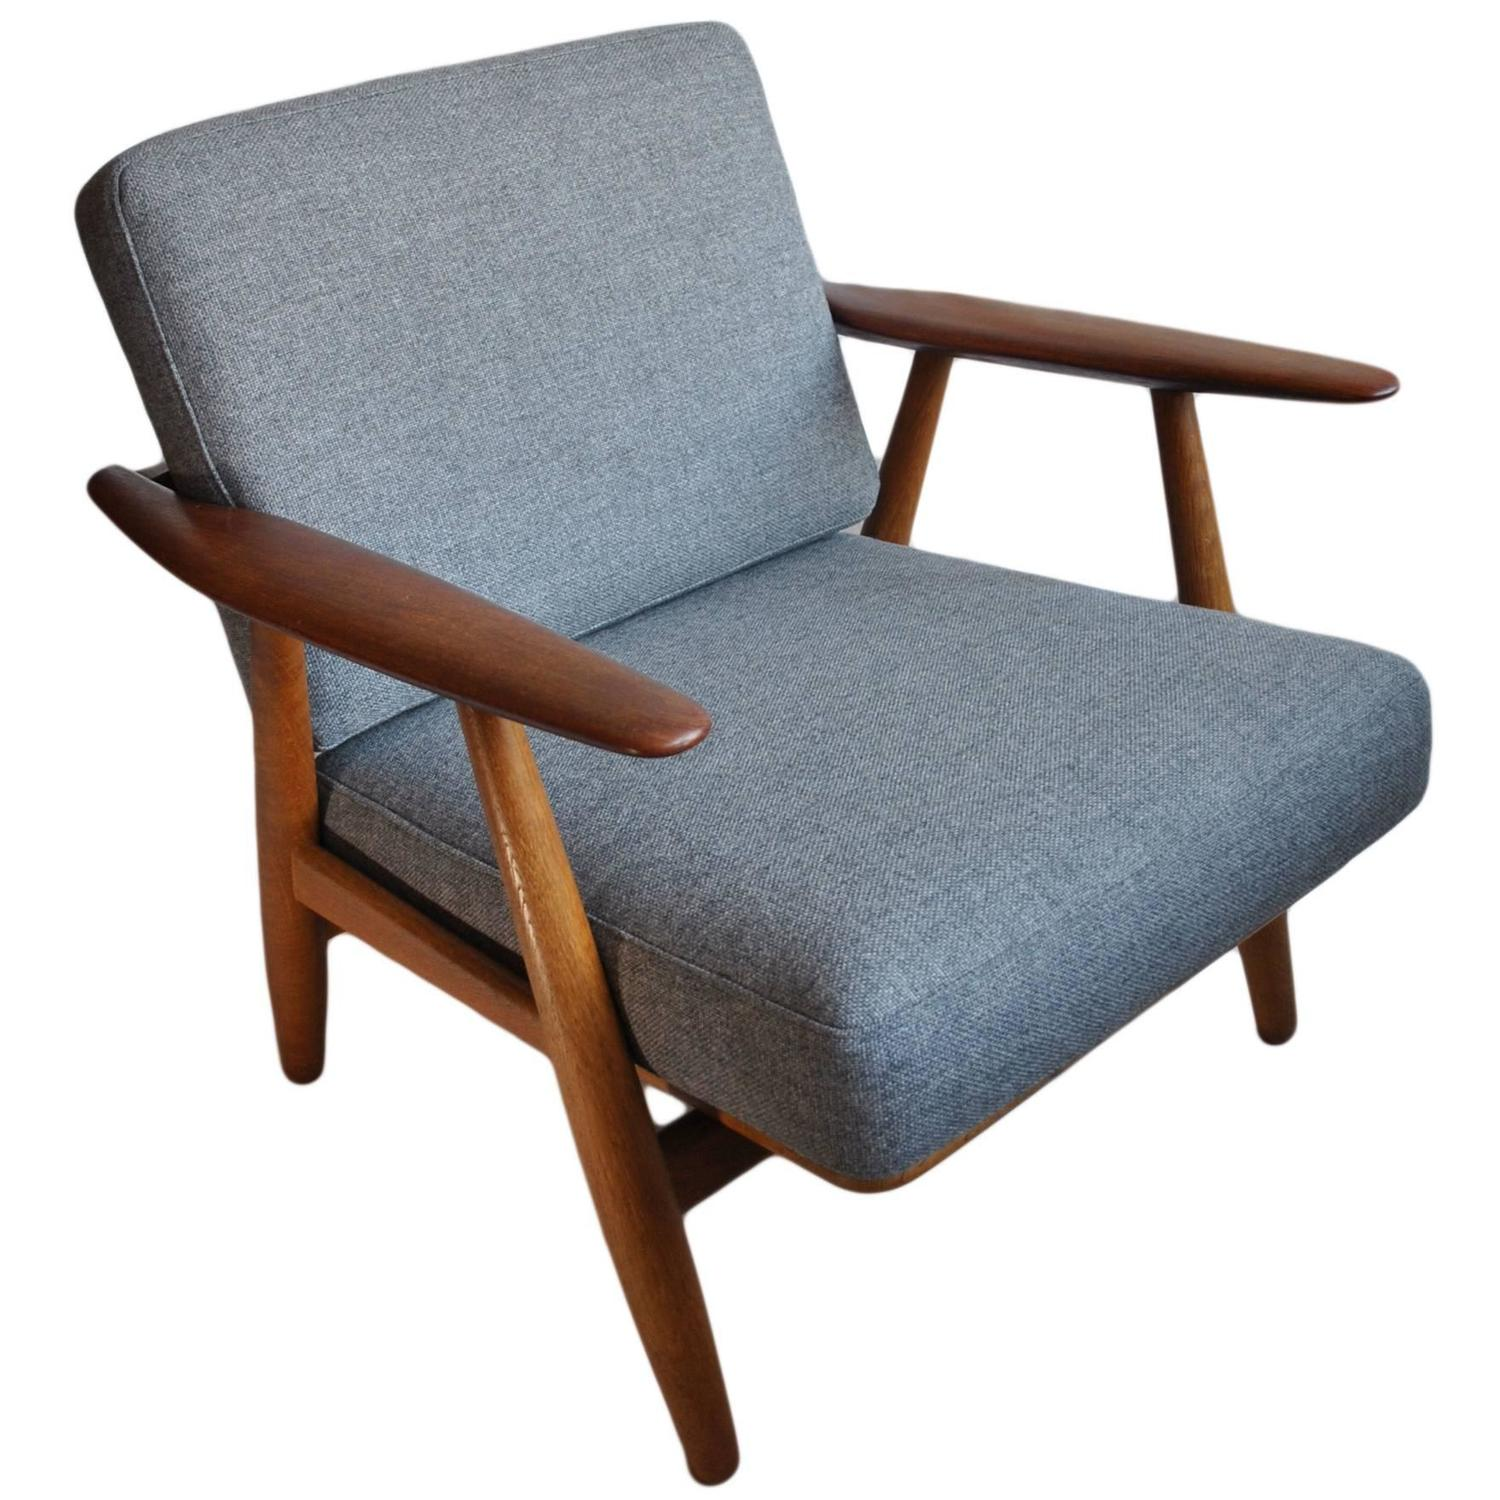 Cigar Lounge Chairs Original Hans J Wegner Ge240 Cigar Chair At 1stdibs